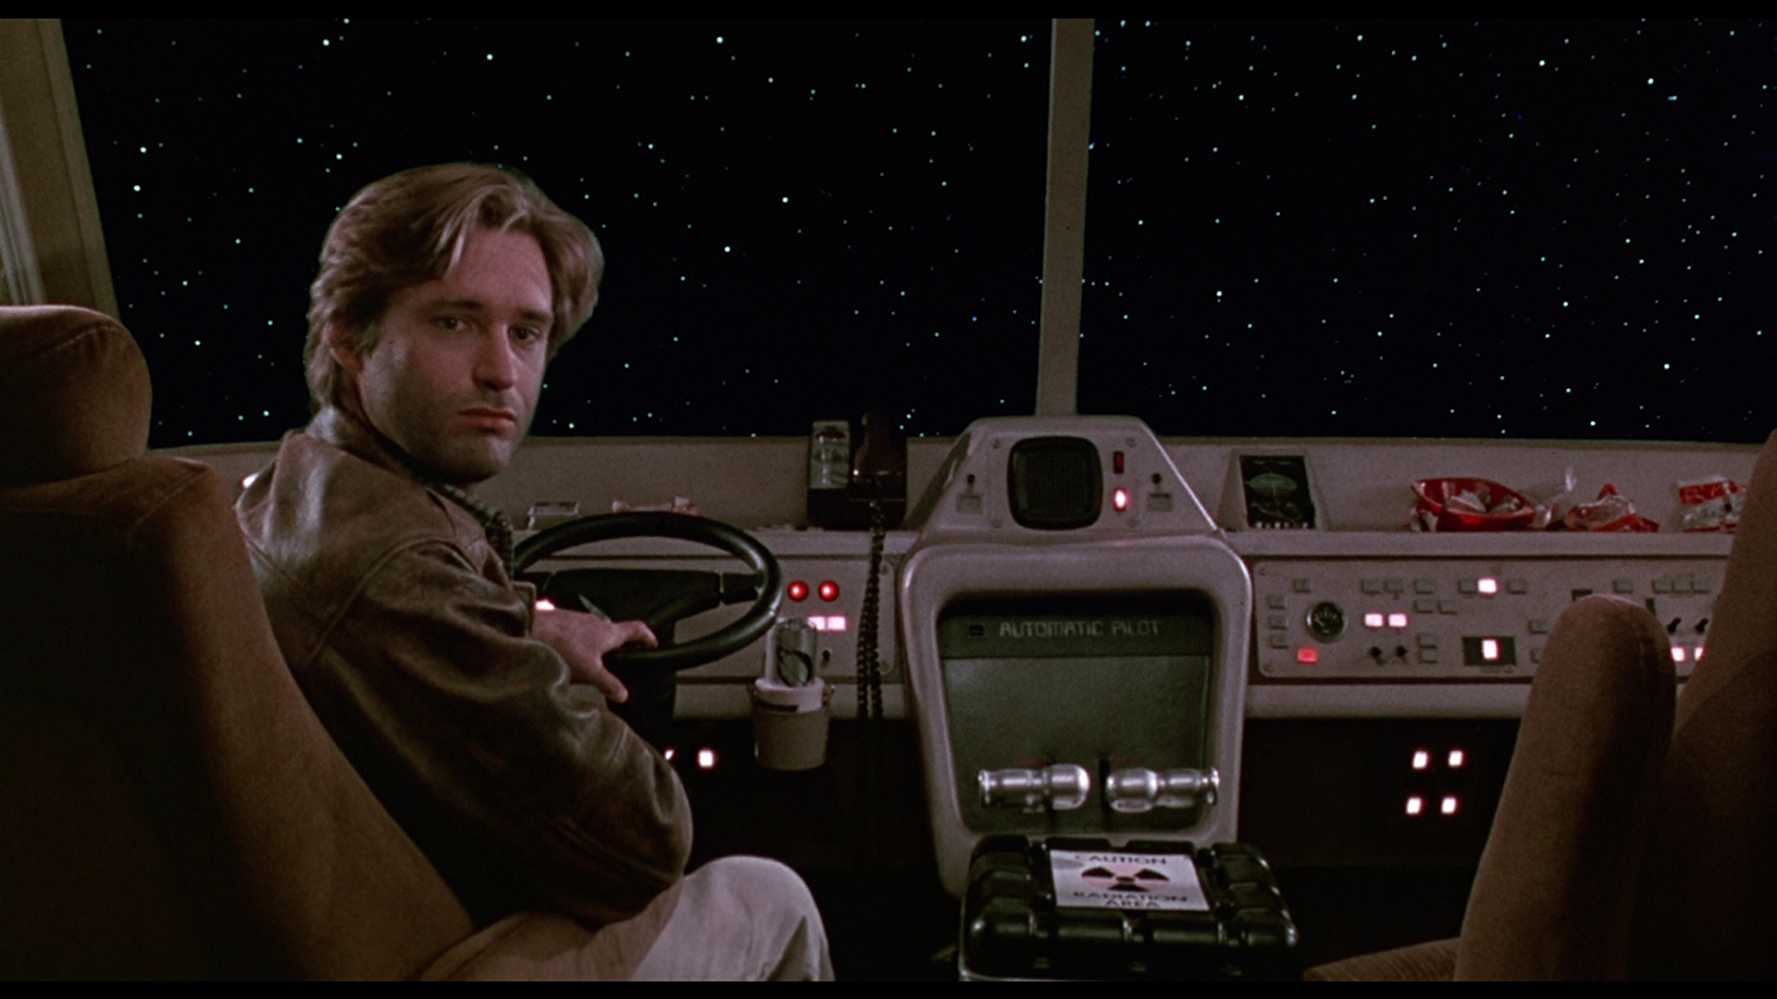 Bill Pullman in Mel Brooks' 'Star Wars' spoof 'Spaceballs'. (IMDb)